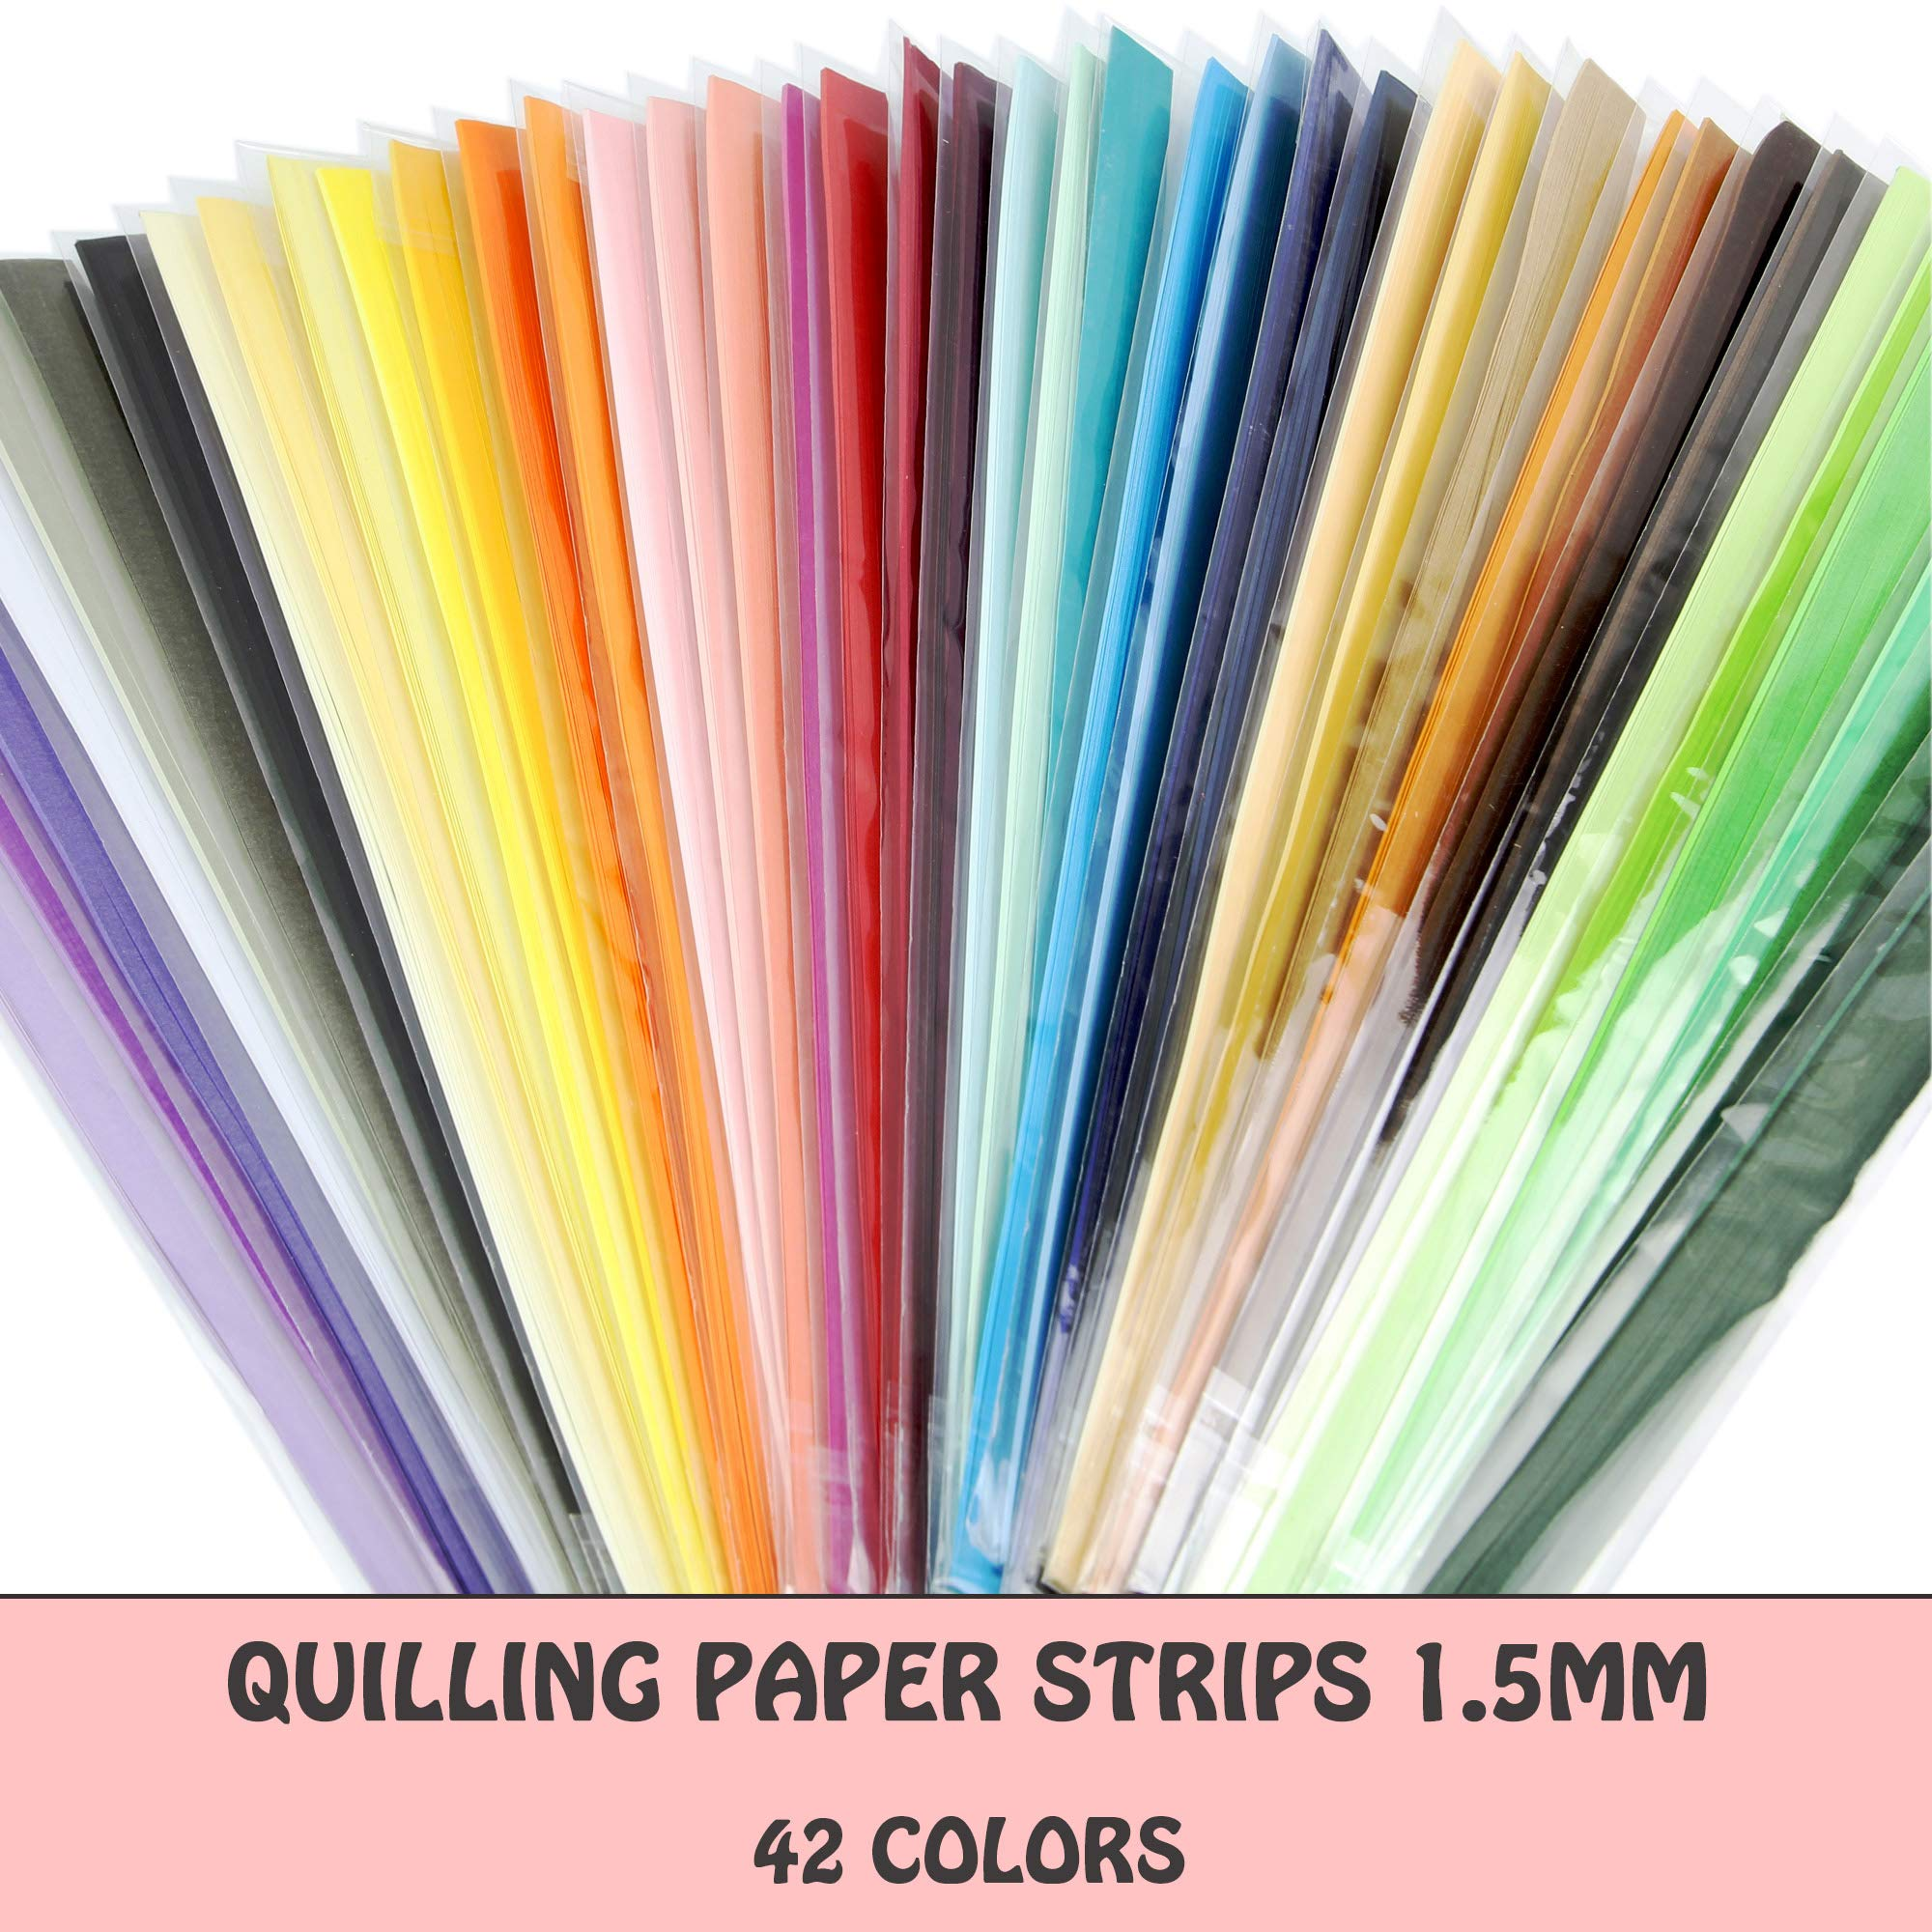 IMISNO Quilling Paper Strips Set - Width 1.5mm,42 Colors,5040 Strips Total